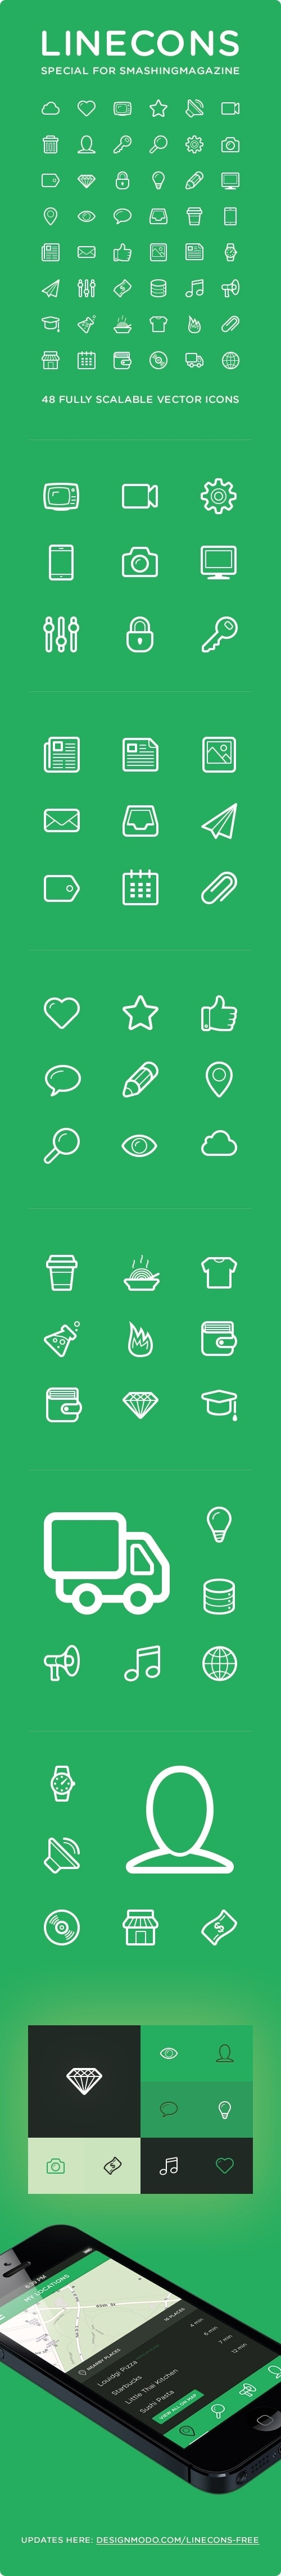 Linecons #logo #vector #icons